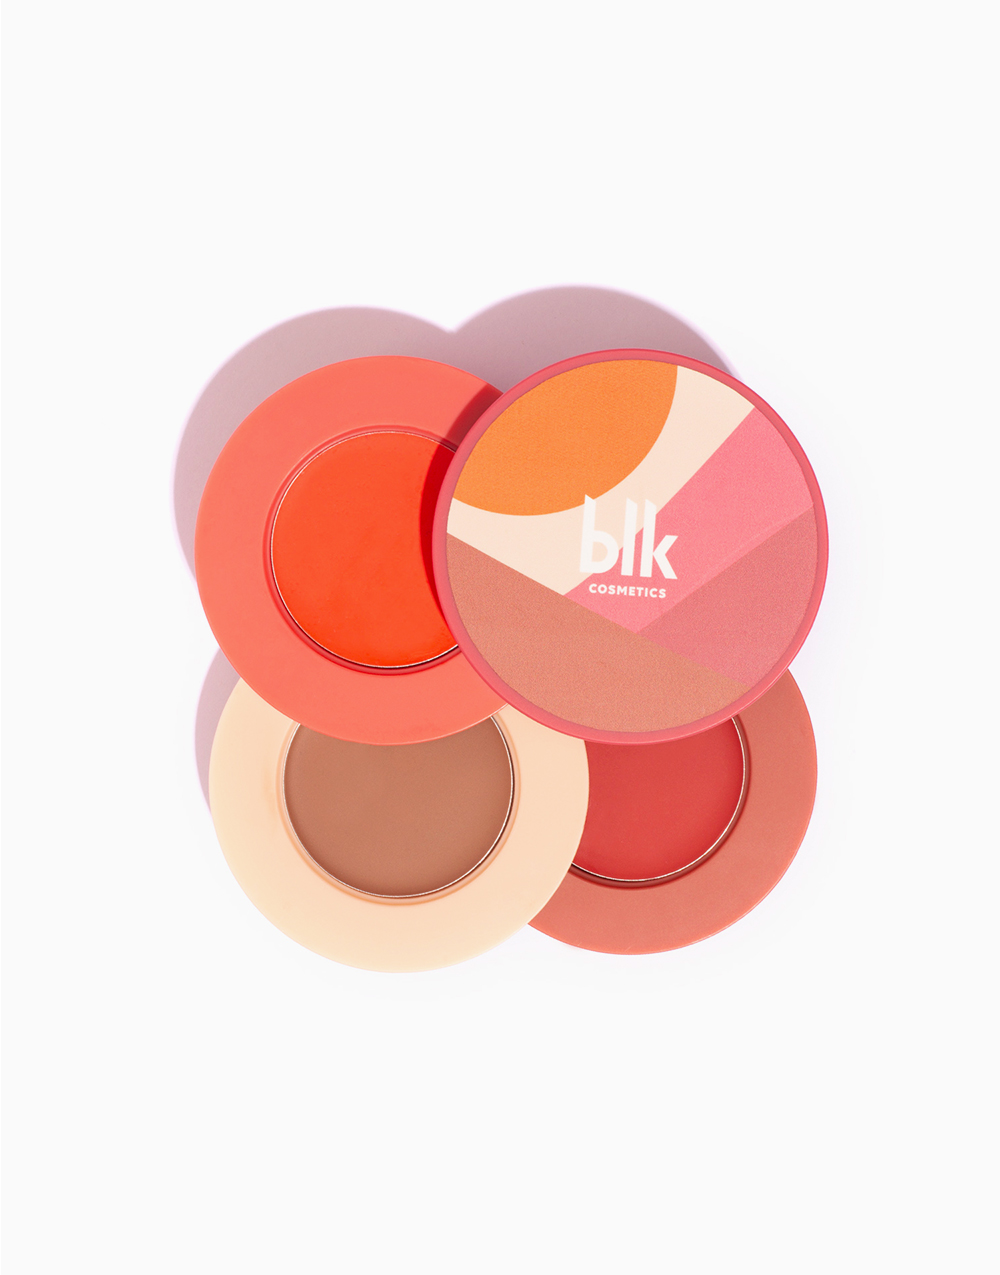 Face Stack 3-Piece Stack in Pool Party by BLK Cosmetics